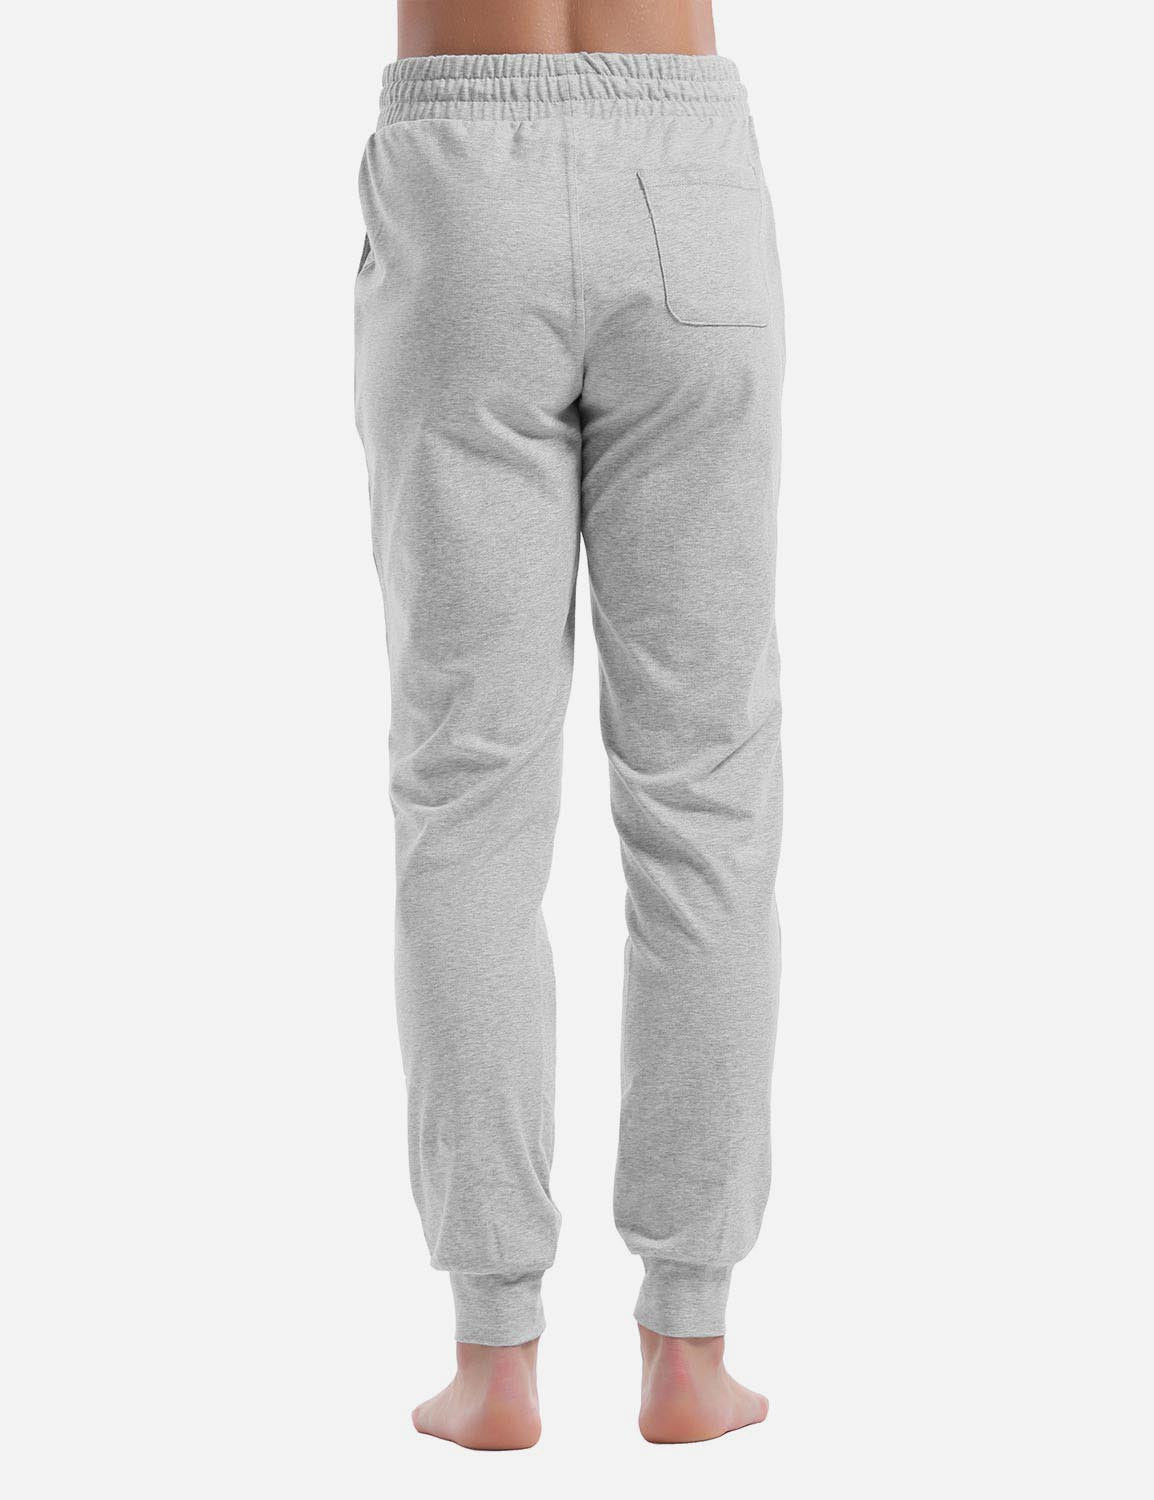 Baleaf Womens Cotton Comfy Pocketed & Tapered Weekend Joggers light gray details